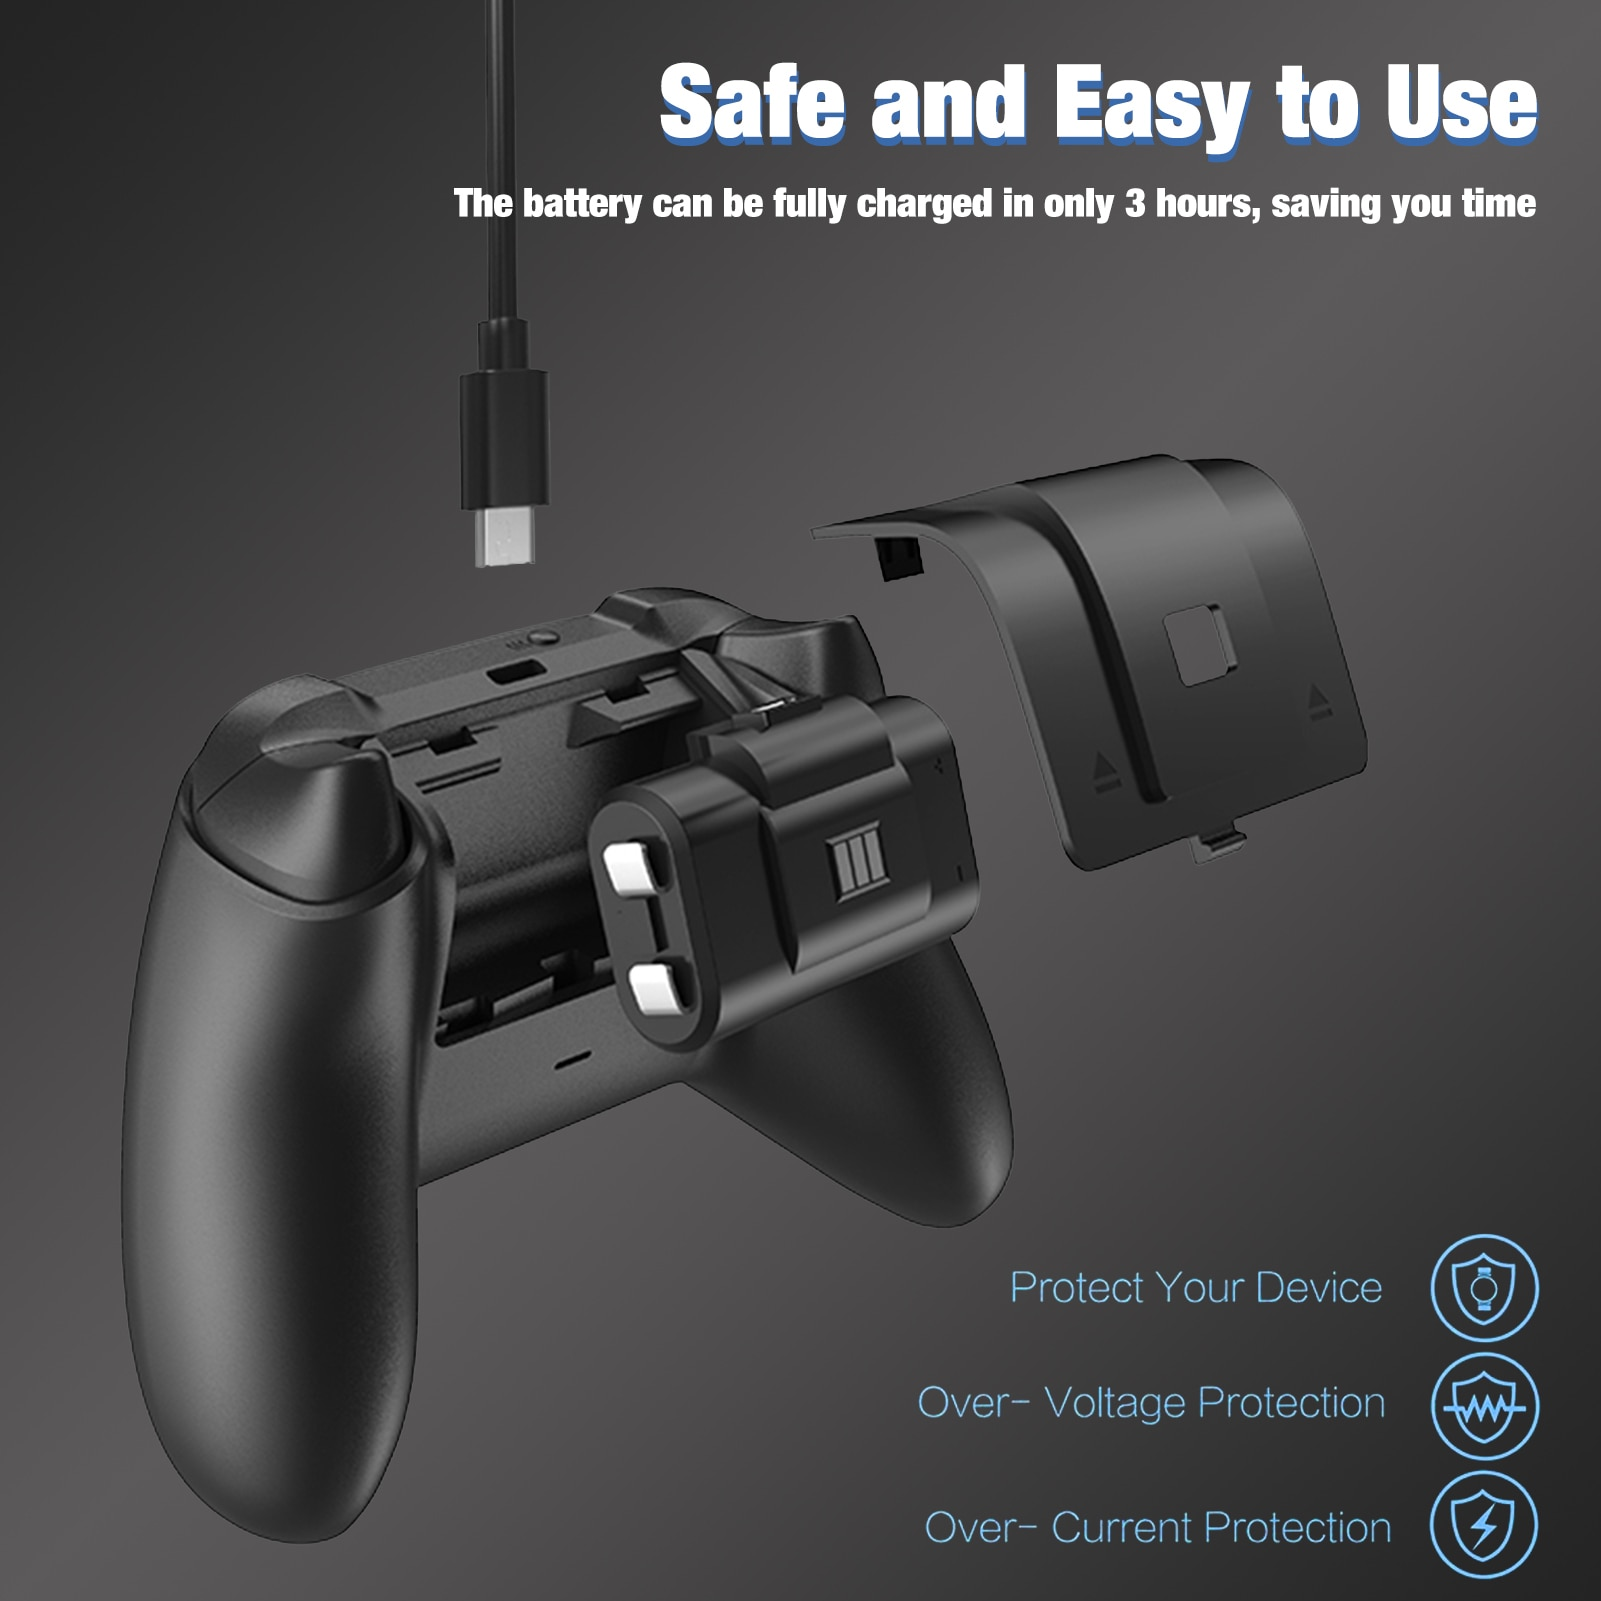 Game Handle Battery Charging Kit For Xbox /Series X Controller Rechargeable Contains 2 1000mAh 2.4v Rechargeable Batteries